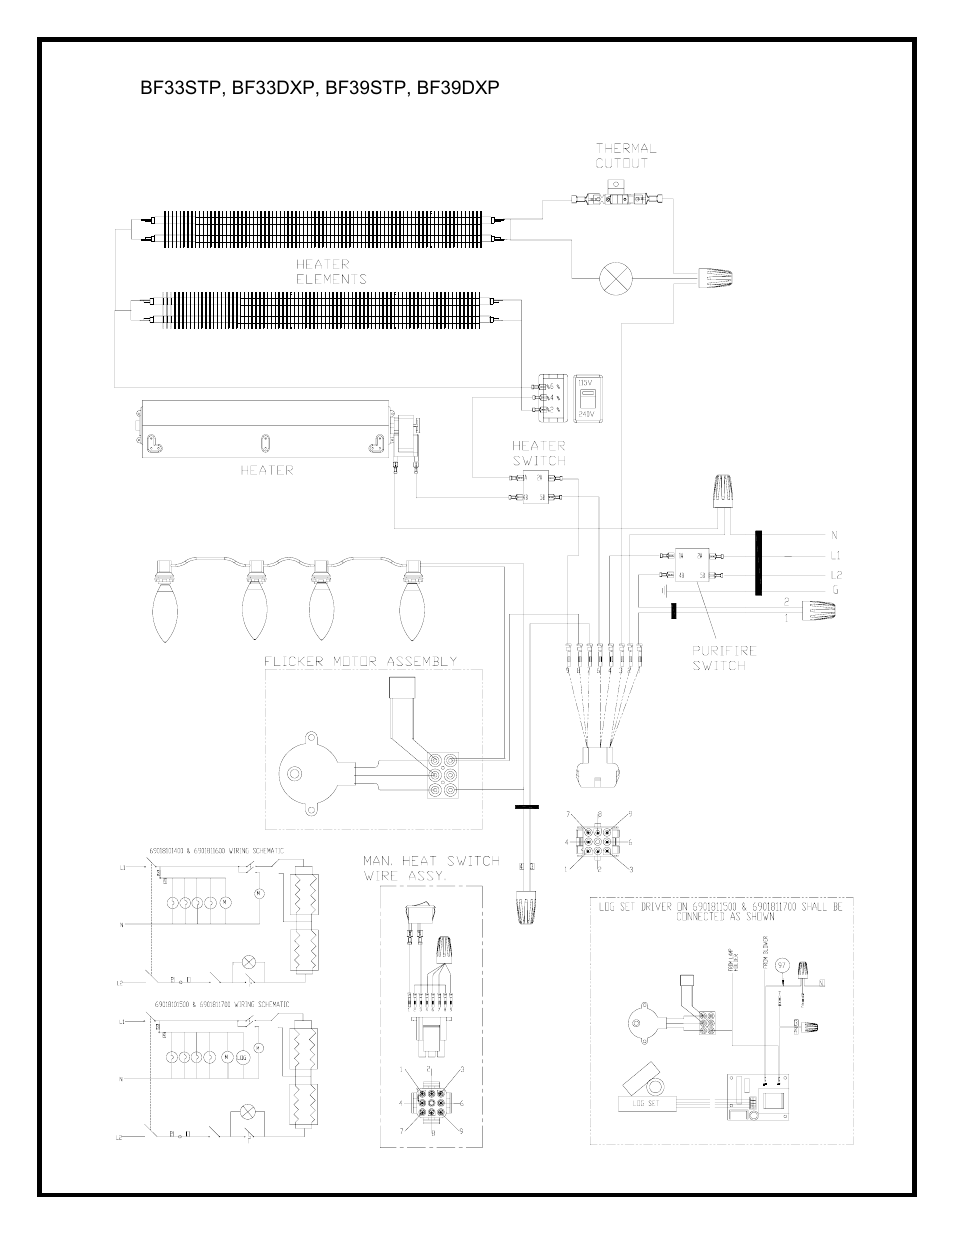 wiring diagram | dimplex bf39stp/dxp user manual | page 8 / 27  manuals directory